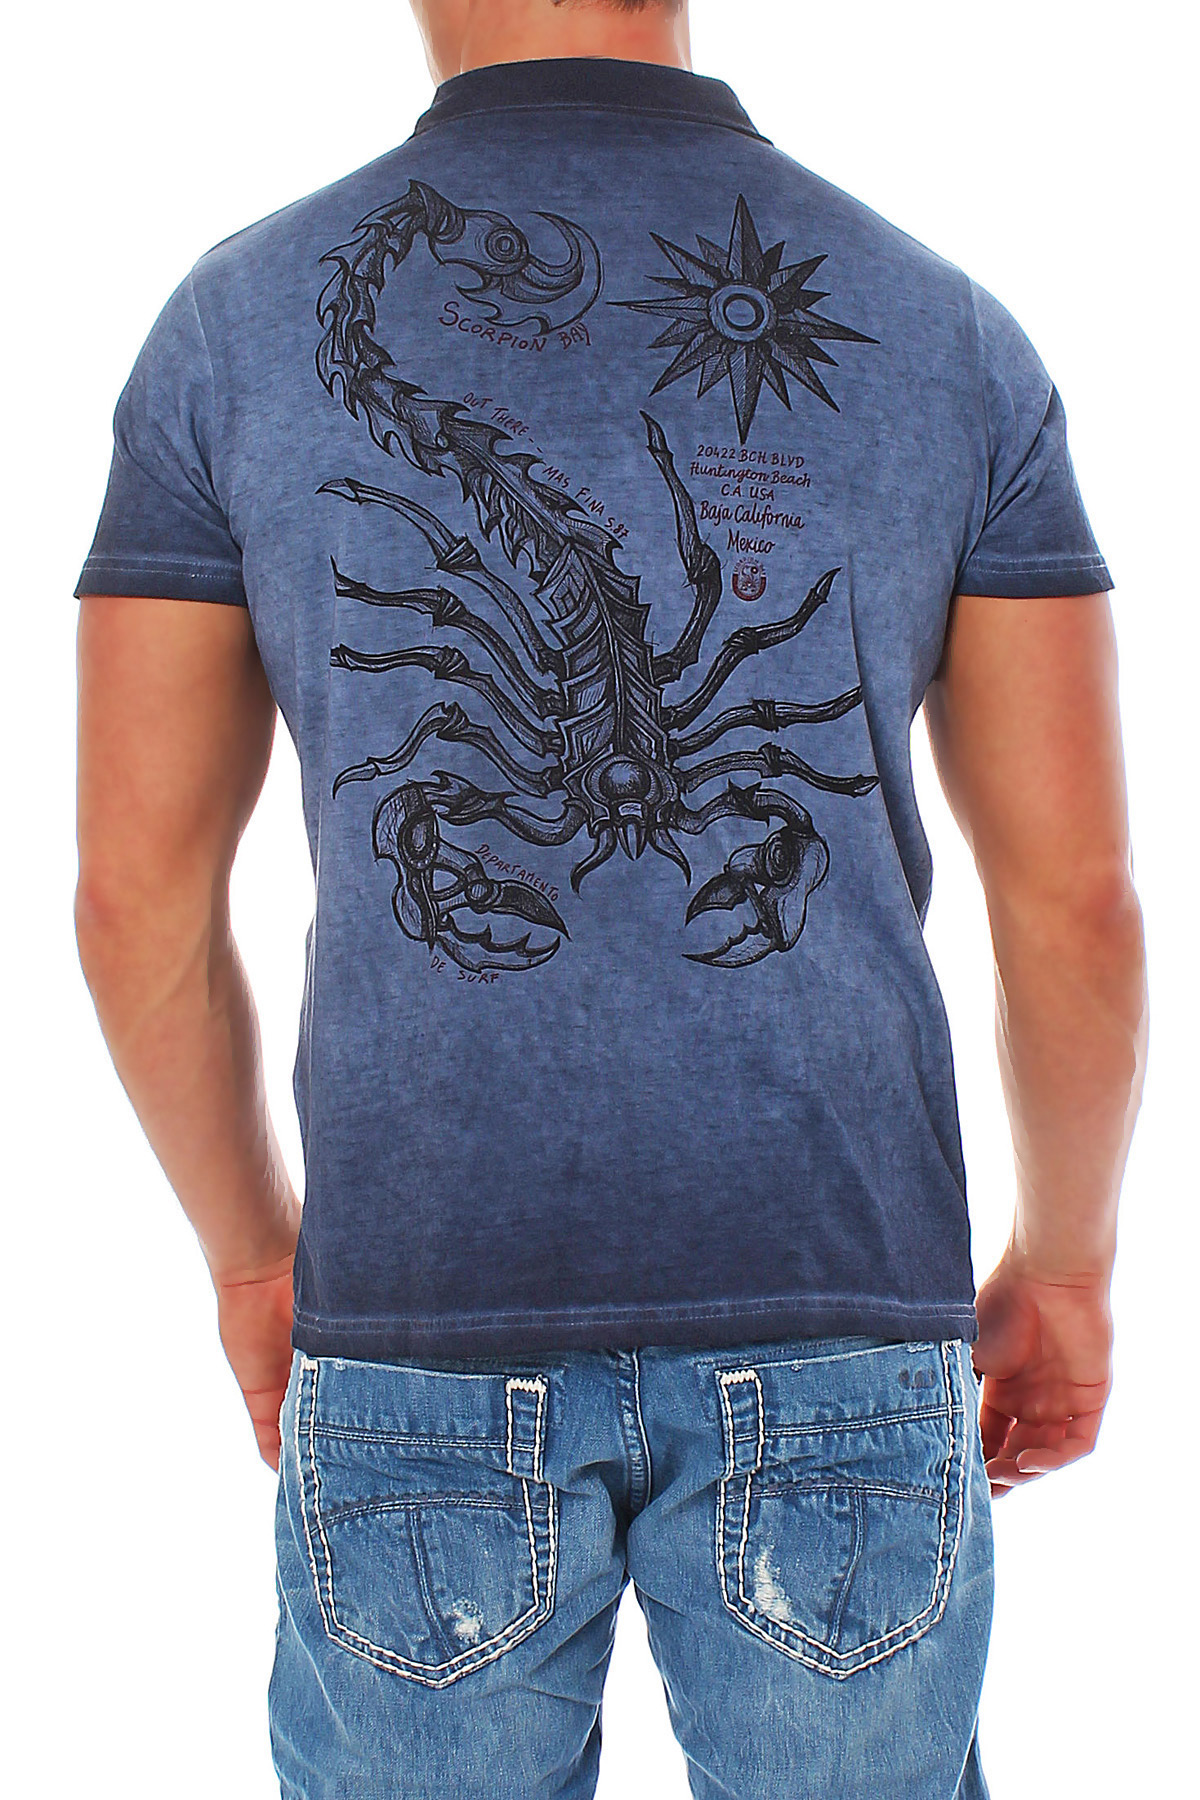 Scorpion bay mens polo shirt t shirt shirt mte2927 navy ebay for South bay t shirts